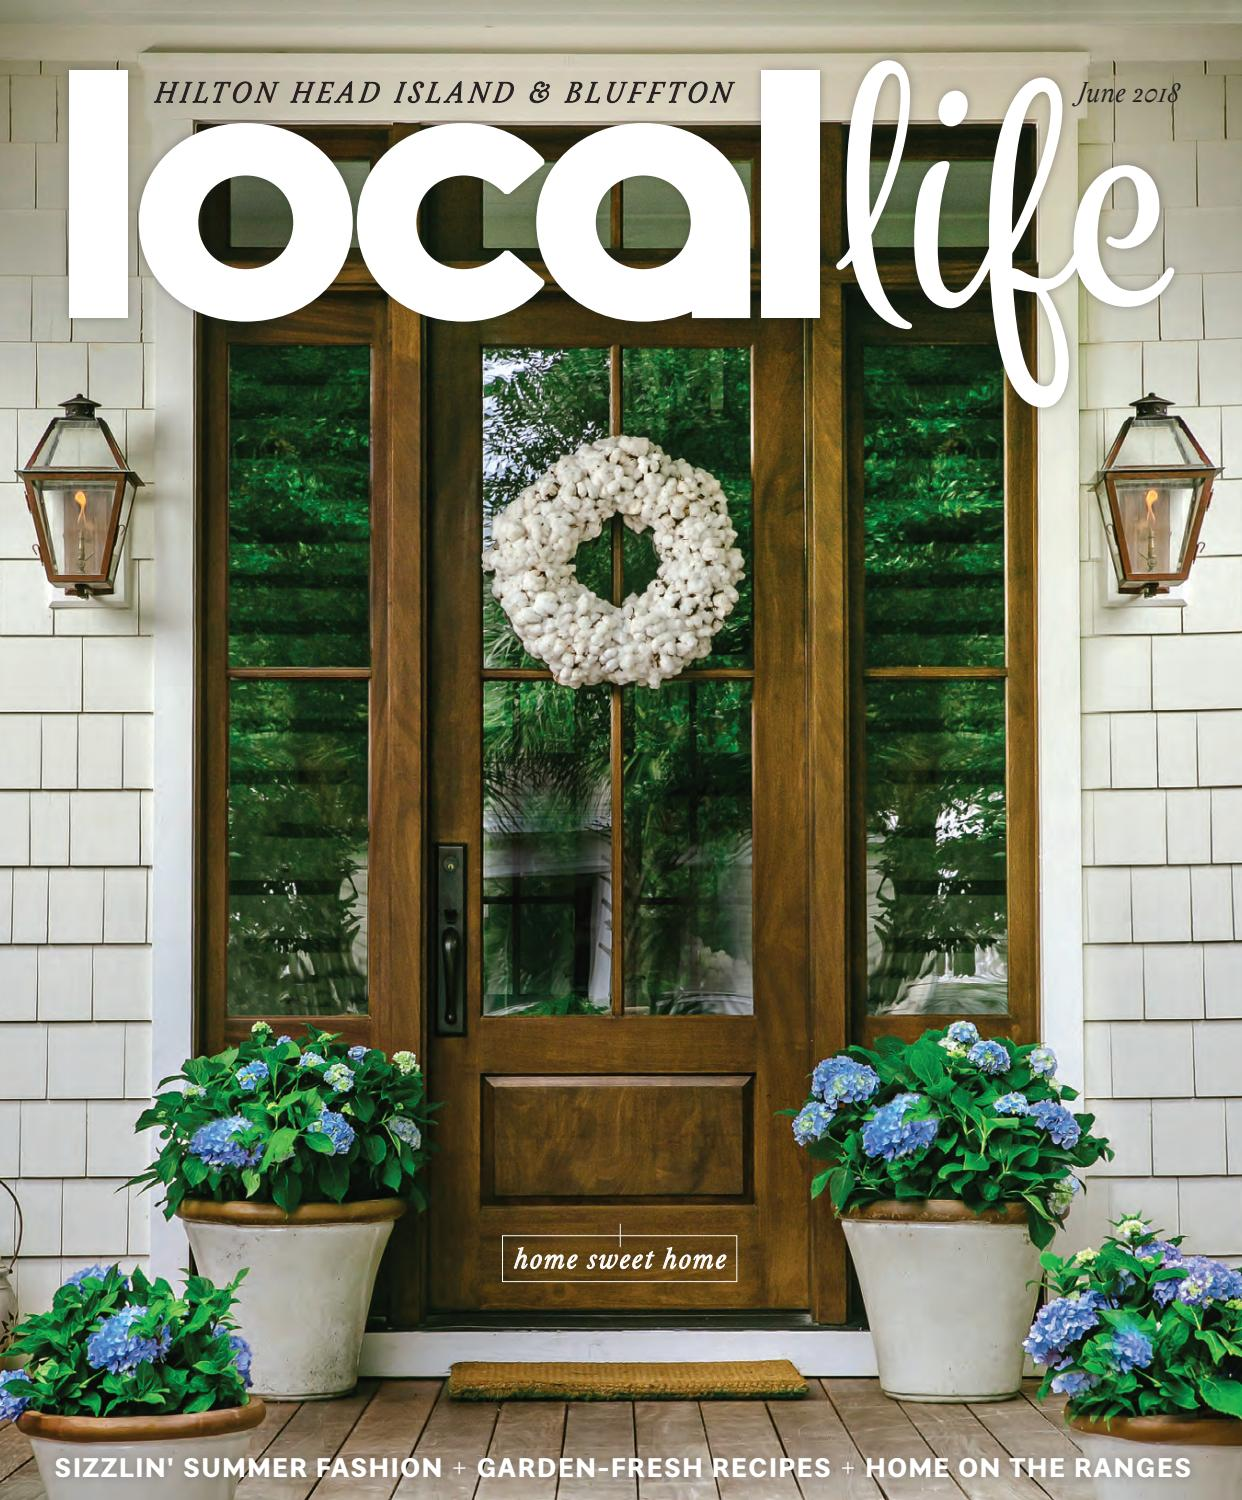 Local Life Magazine June 2018 By LocalLife